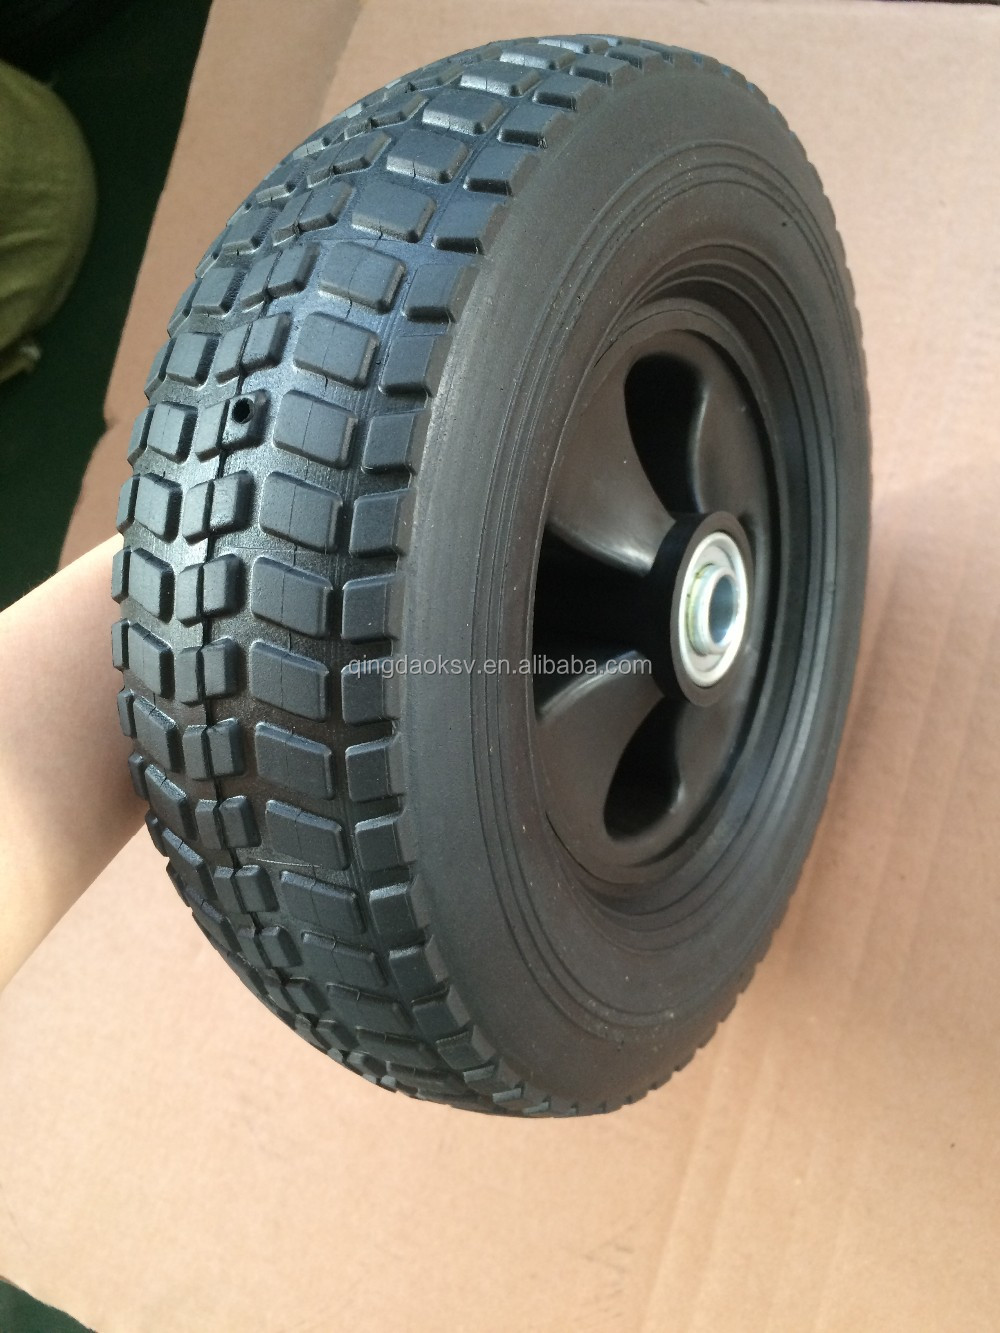 used for American market 10inch semi-pneumatic rubber wheels